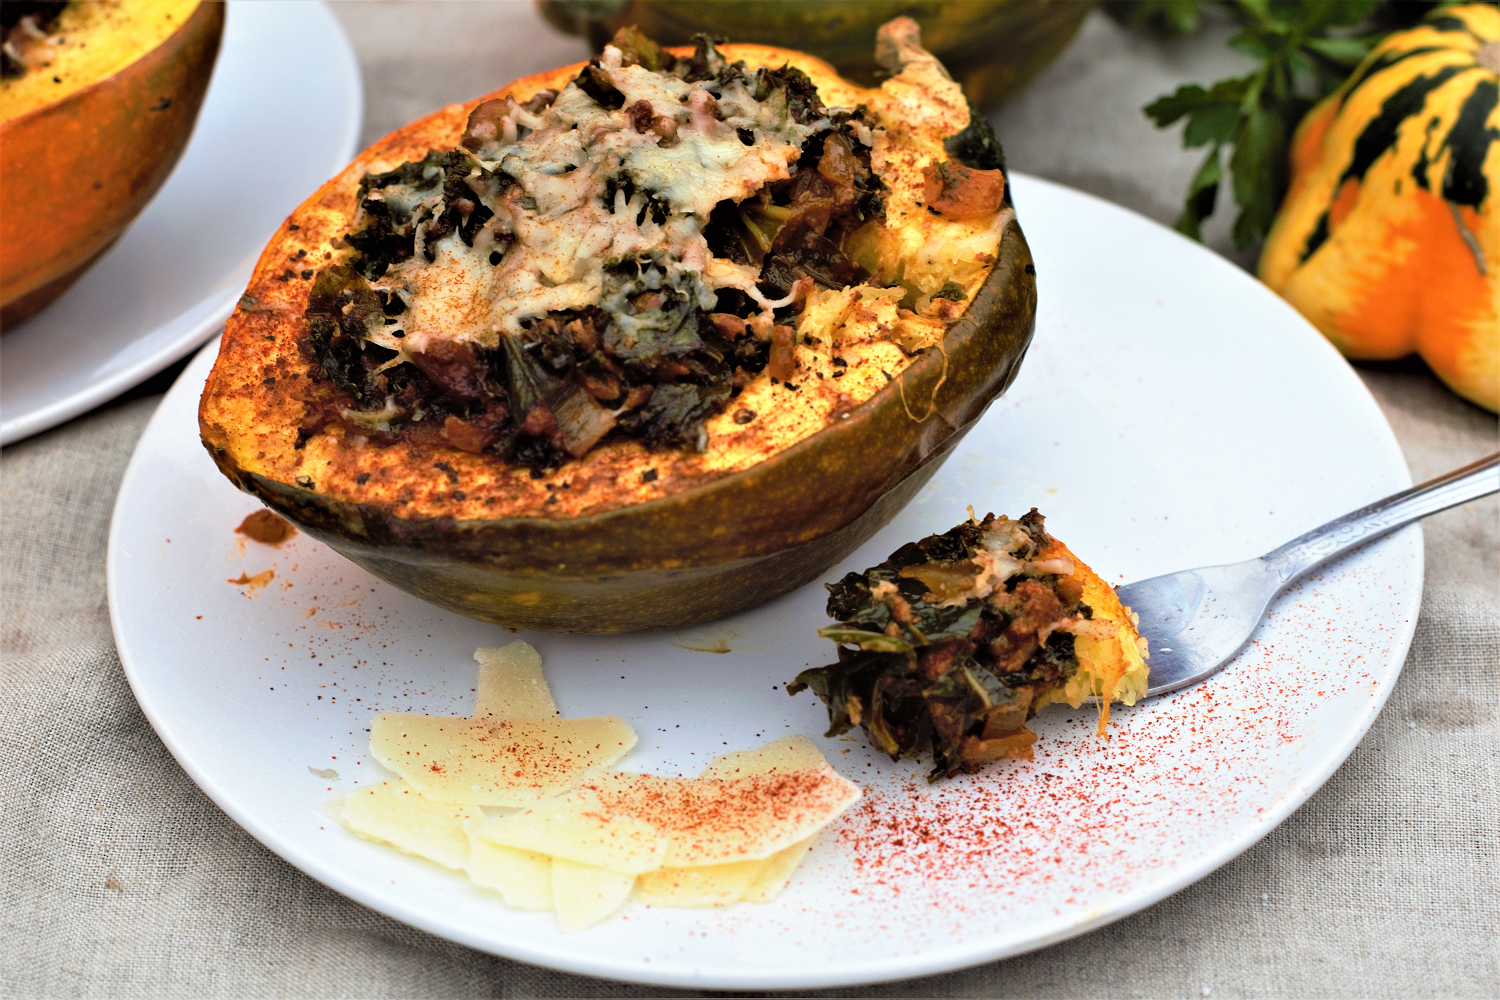 Acorn squash has sweet, nutty flesh that makes perfect individually-portioned bowls for lots of kale hidden in spicy, buttery chorizo.